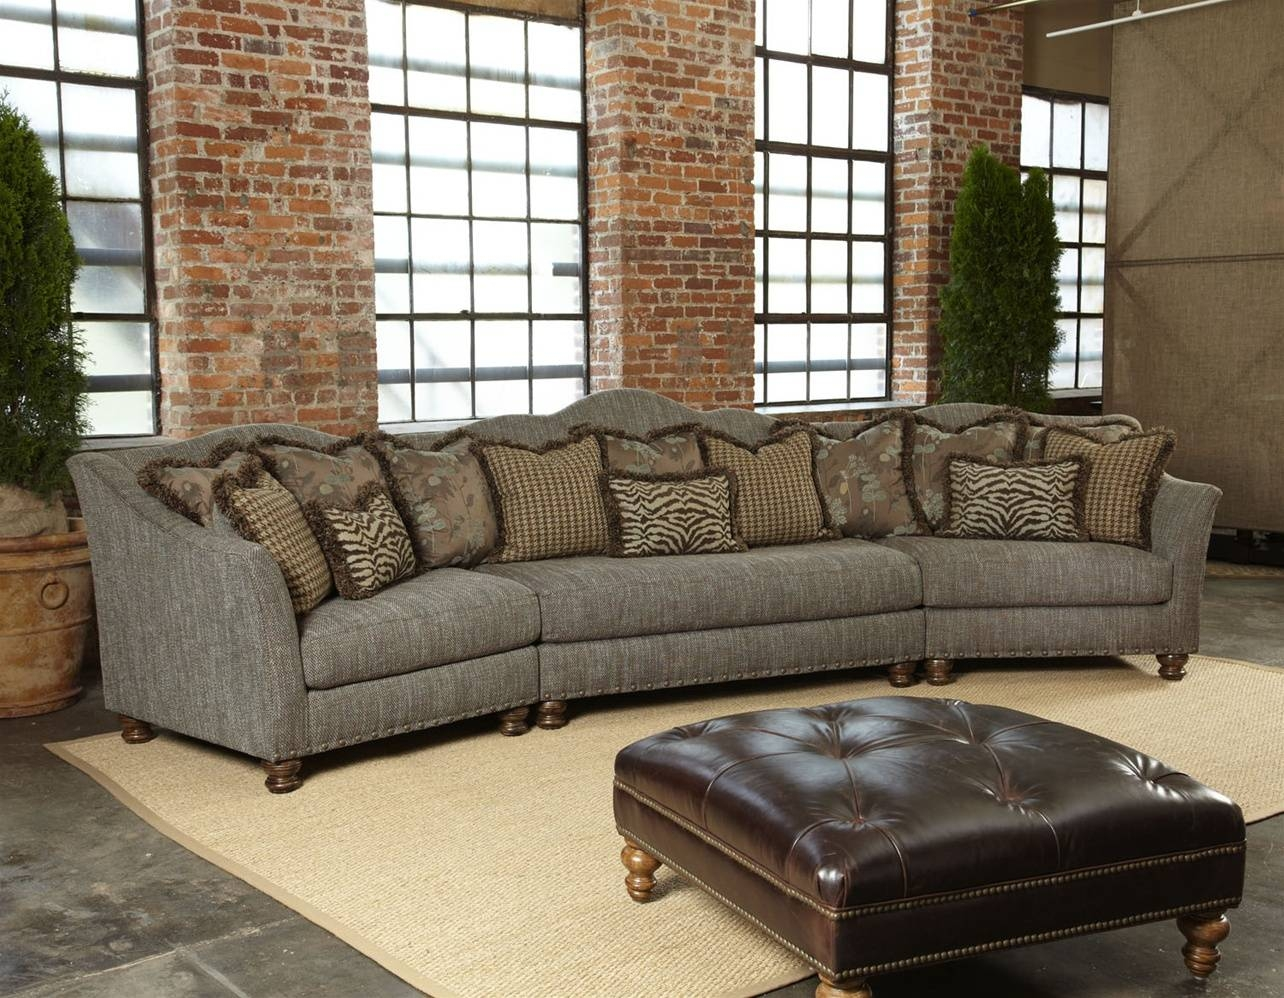 High End Couches Glamorous High End Sofas | Goodca Sofa inside High End Leather Sectional Sofa (Image 4 of 25)